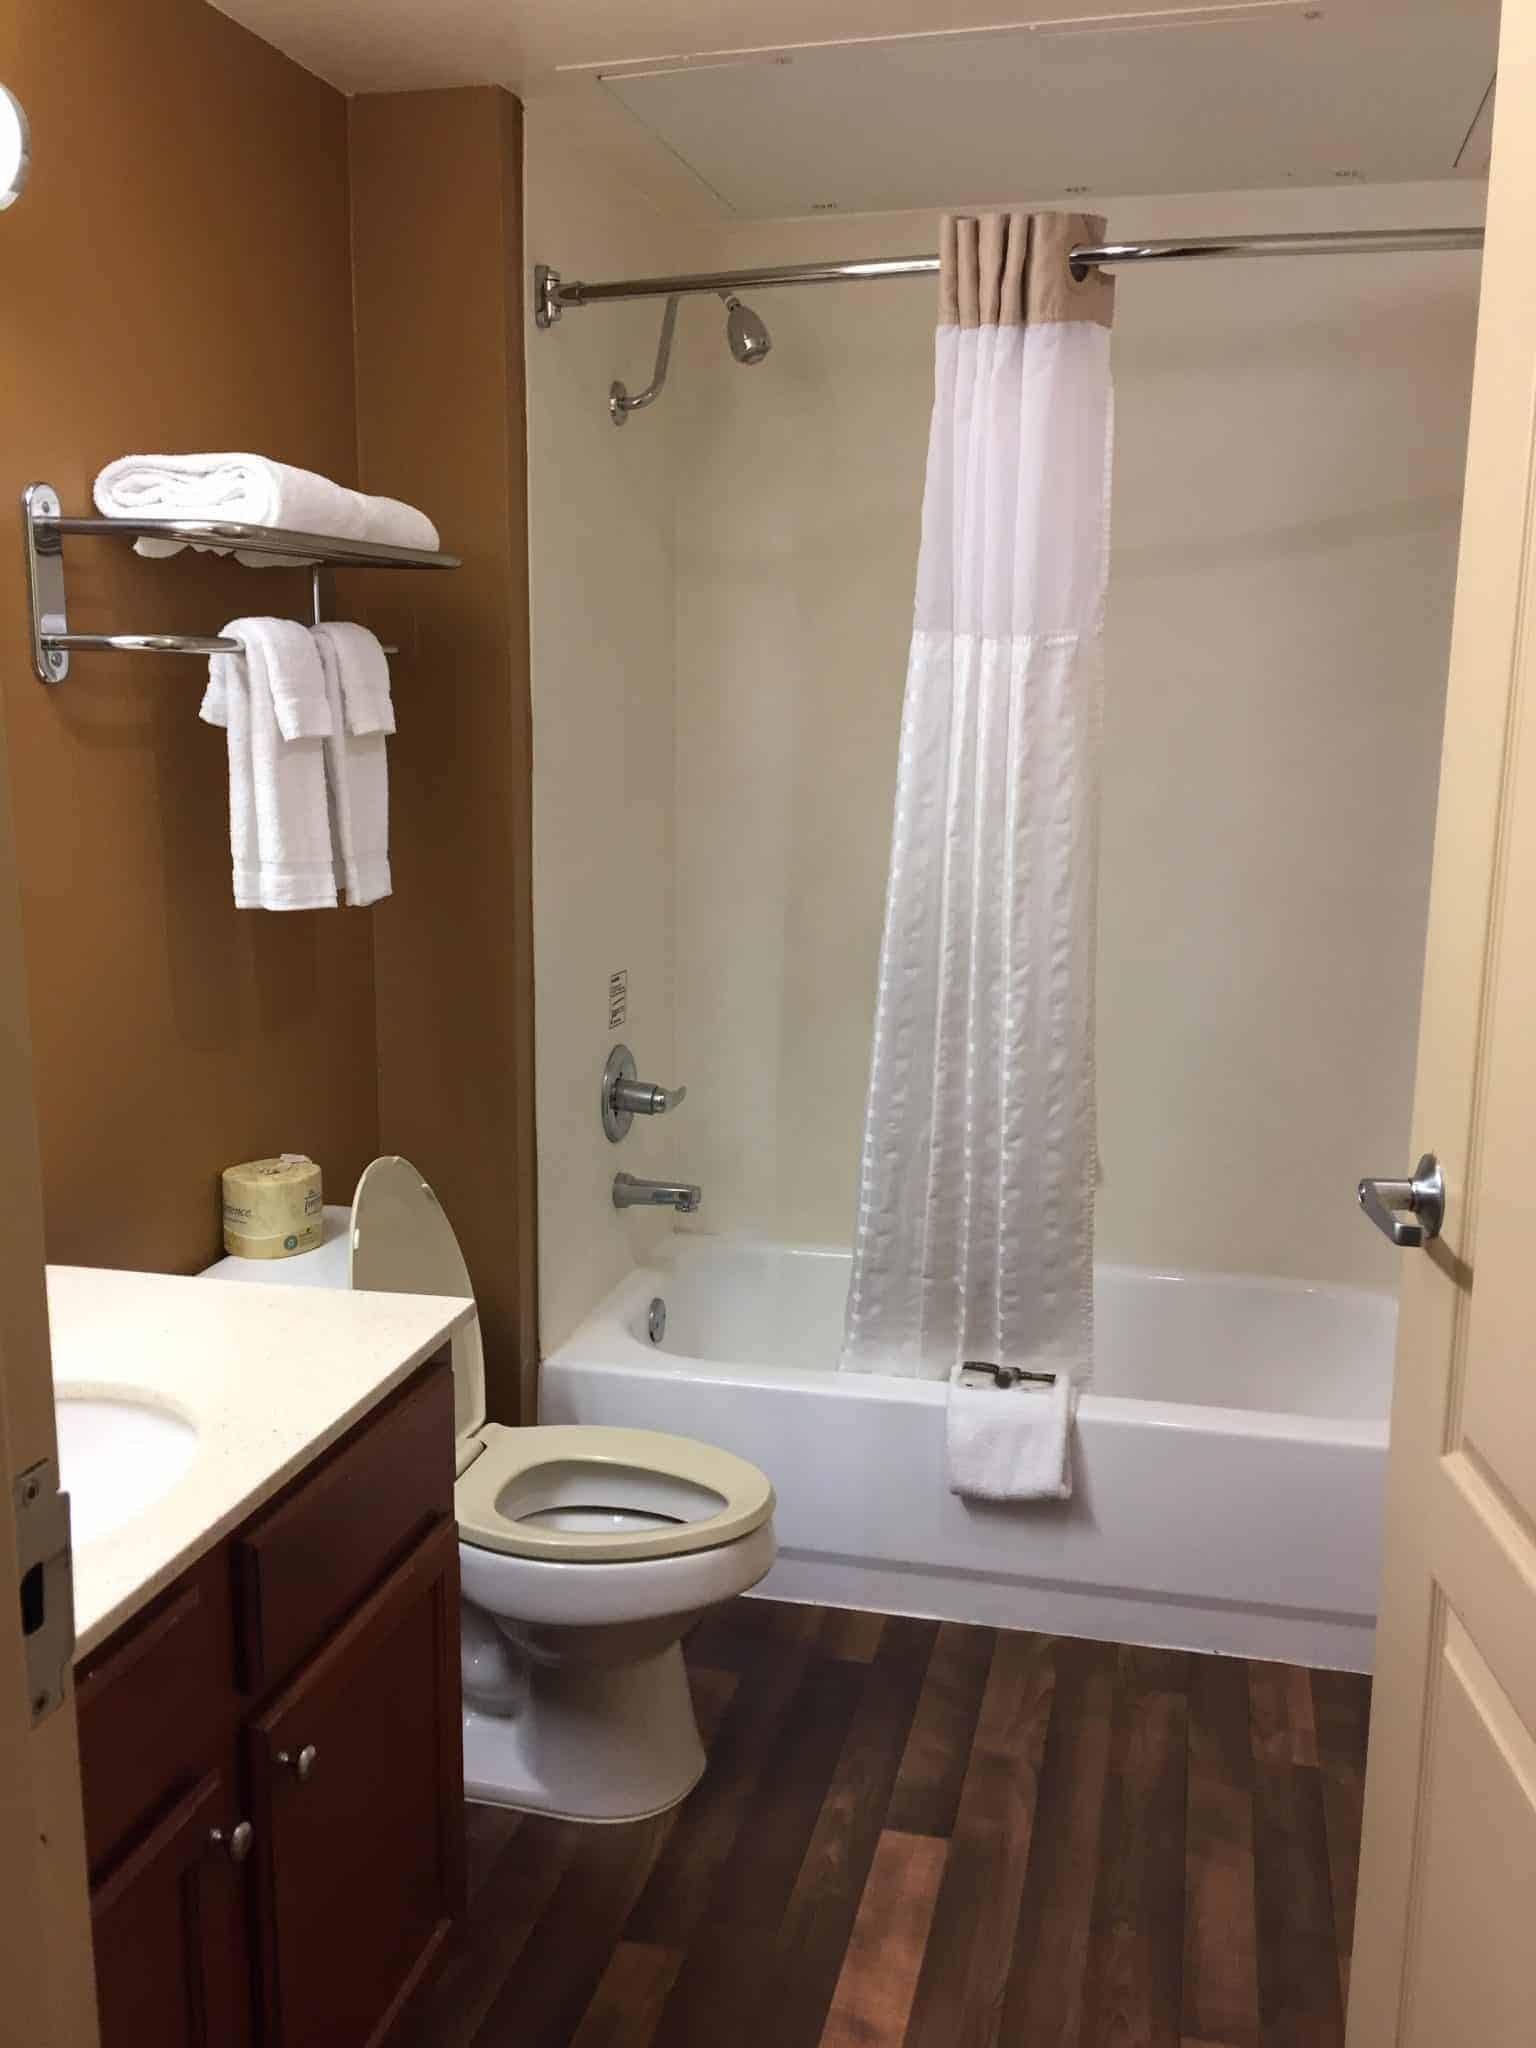 extended-stay-america-for-family-friendly-and-pet-friendly-travel-bathroom-e1502303441636-6130200